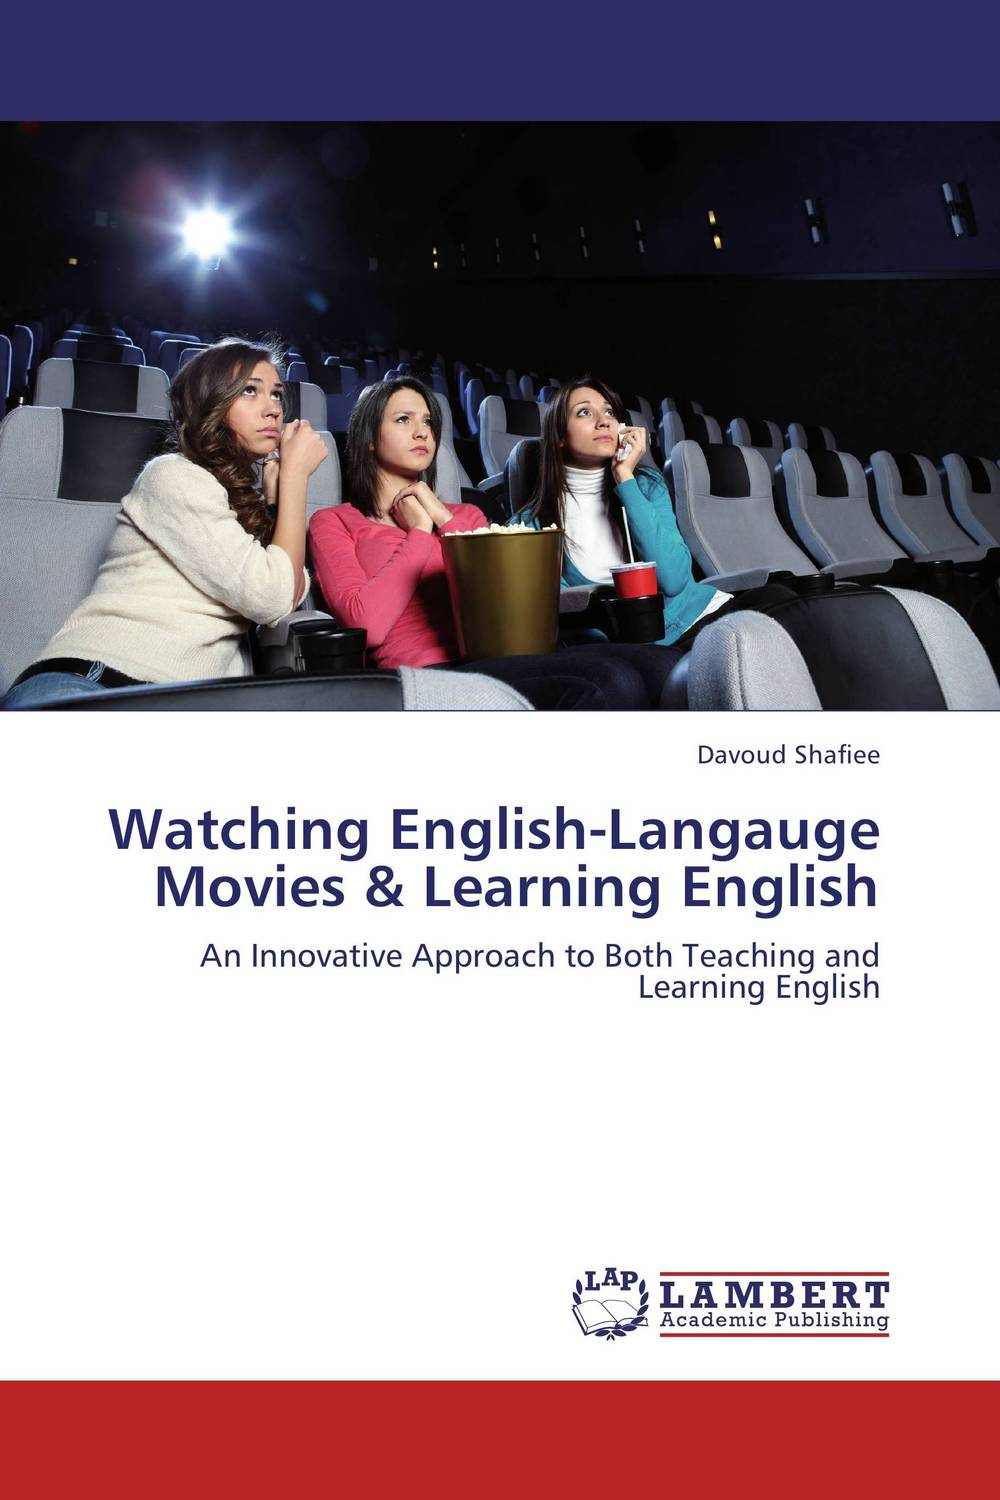 Watching English-Langauge Movies & Learning English